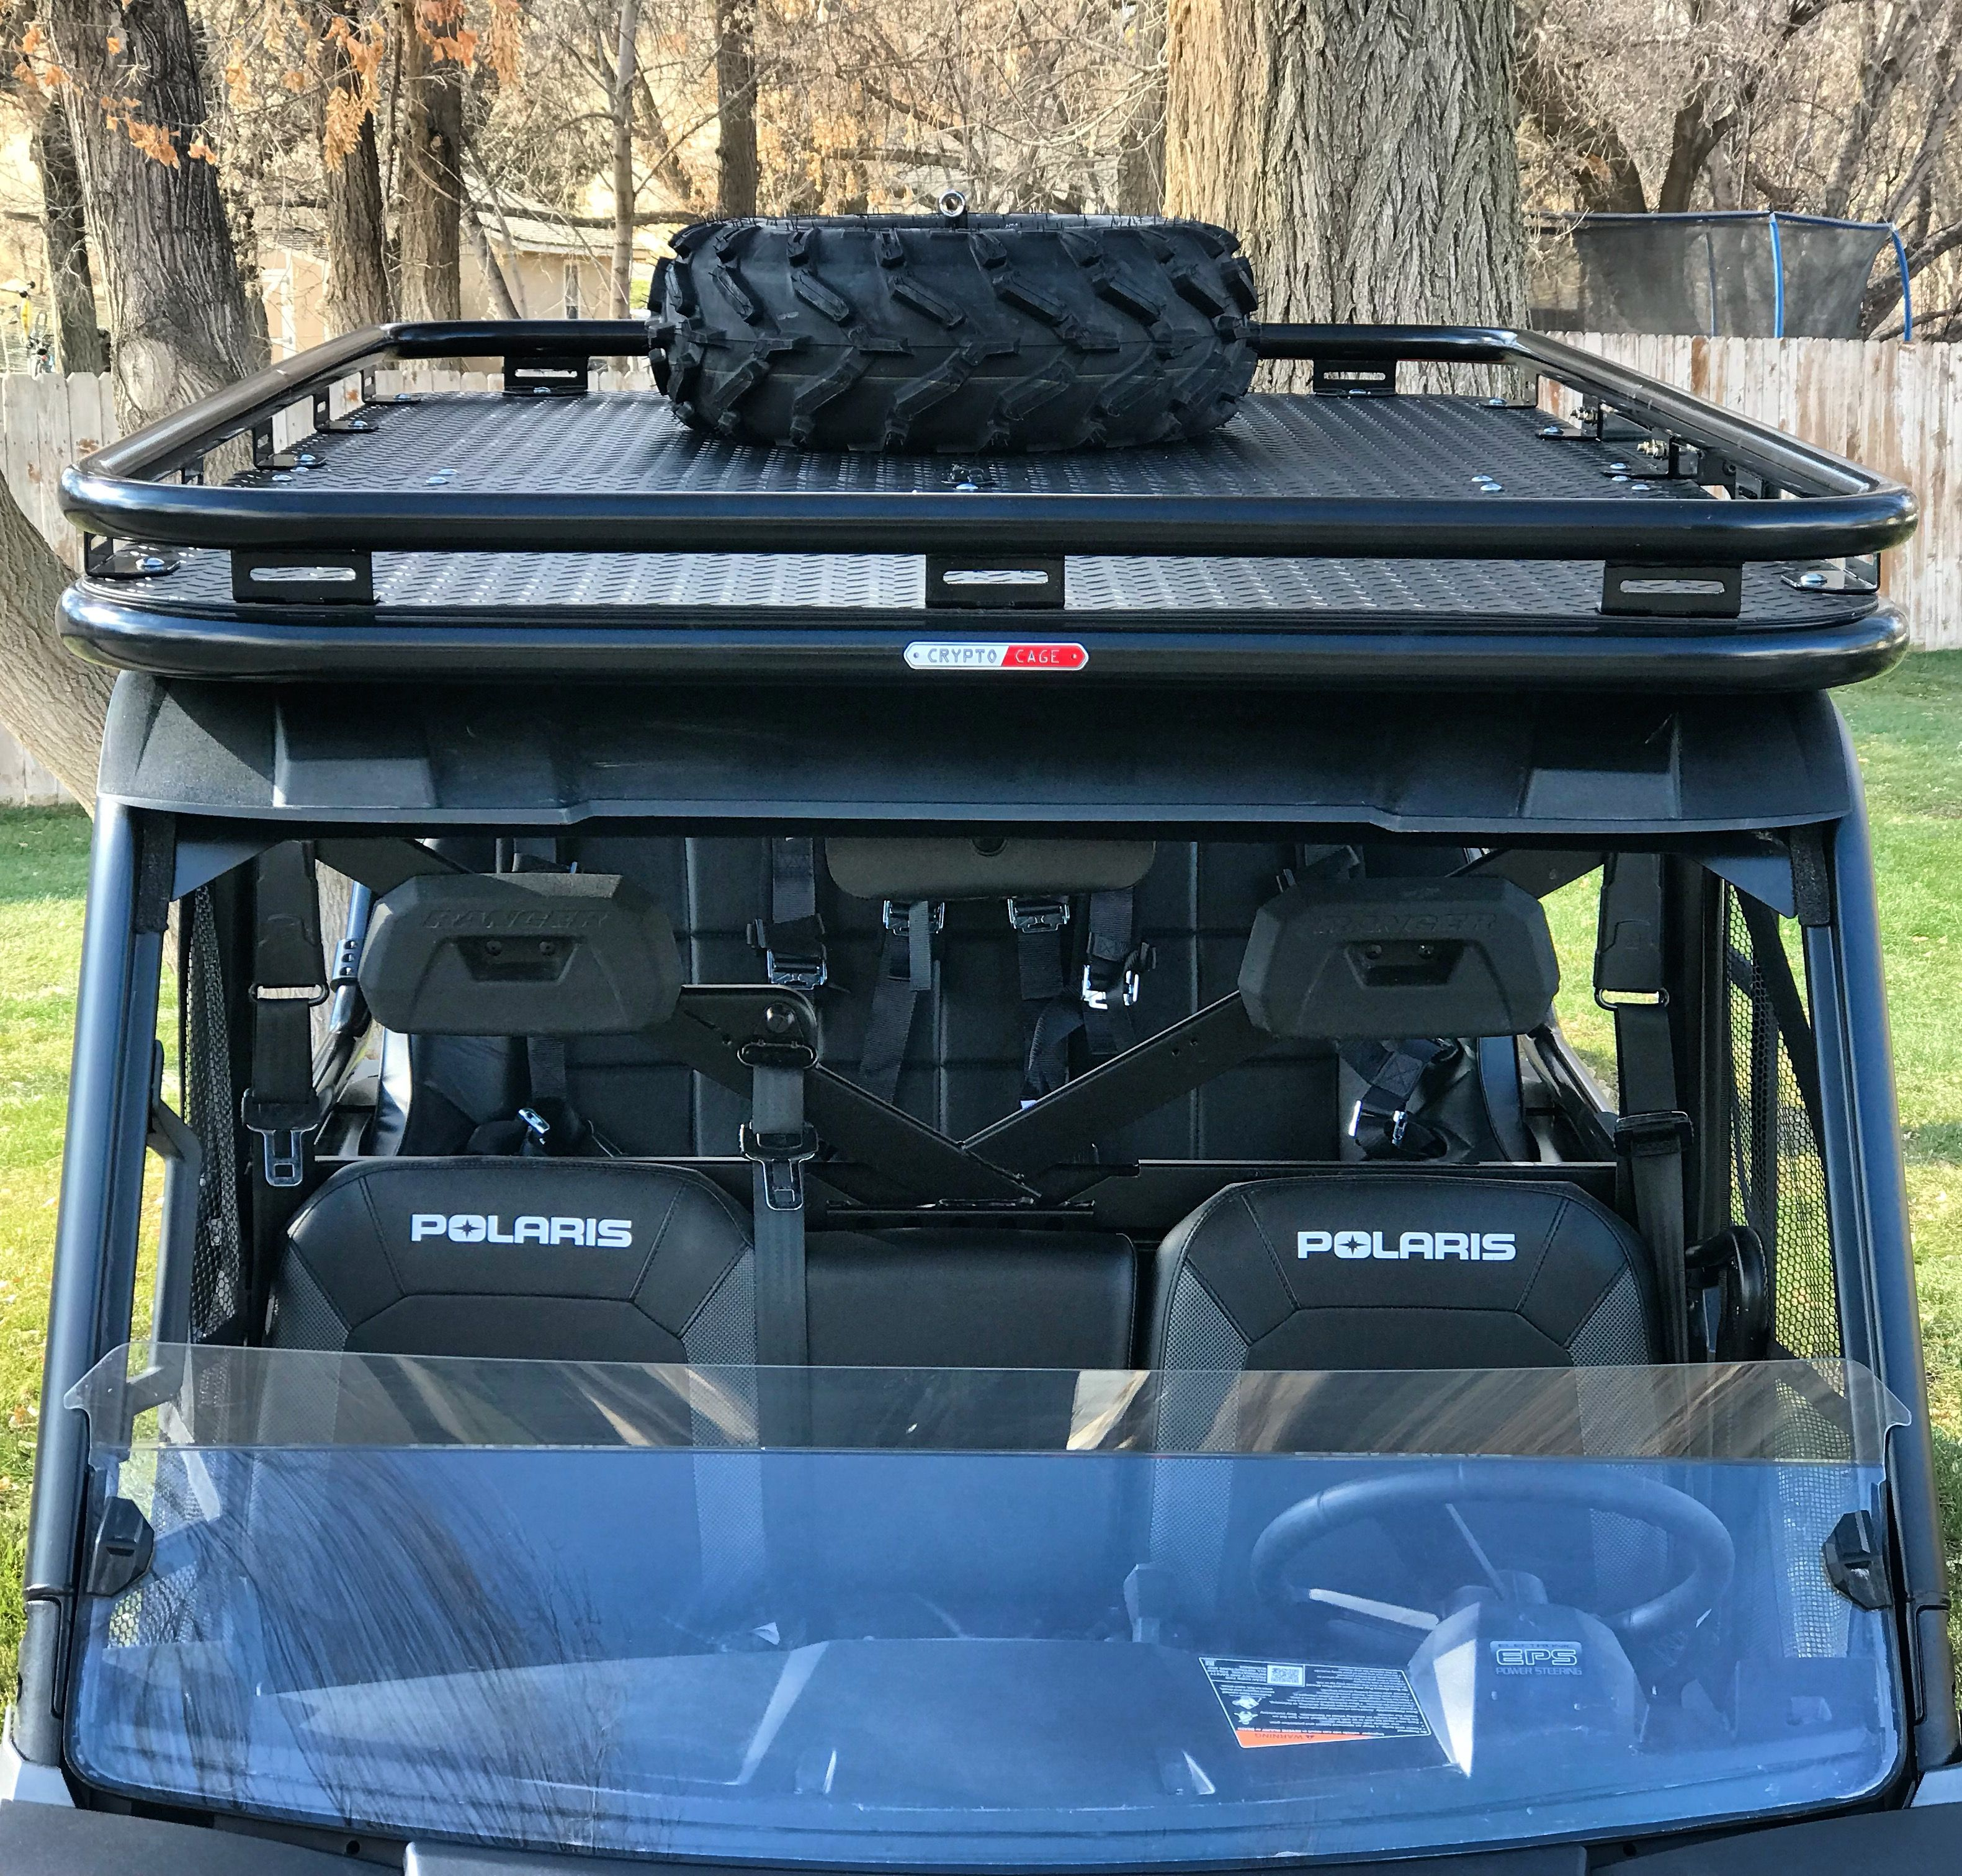 Cryptocage Introduces The Kong Cage For The Polaris Ranger 900 And 1000 The Kong Cage Has A Cab Over Polaris Ranger Polaris Ranger Roll Cage Extension Ranger